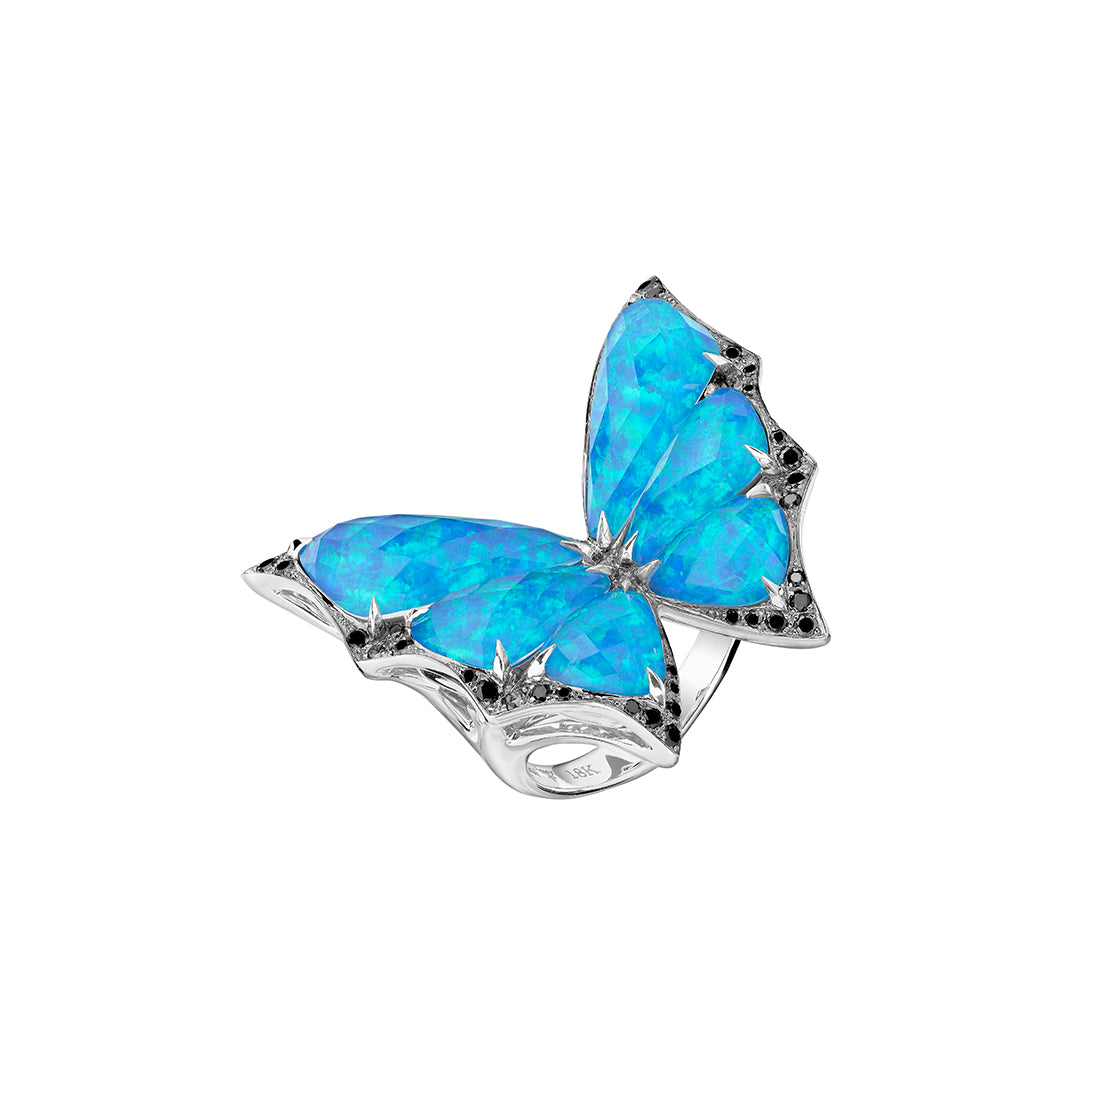 Stephen Webster - Fly By Night Crystal Haze Large Ring